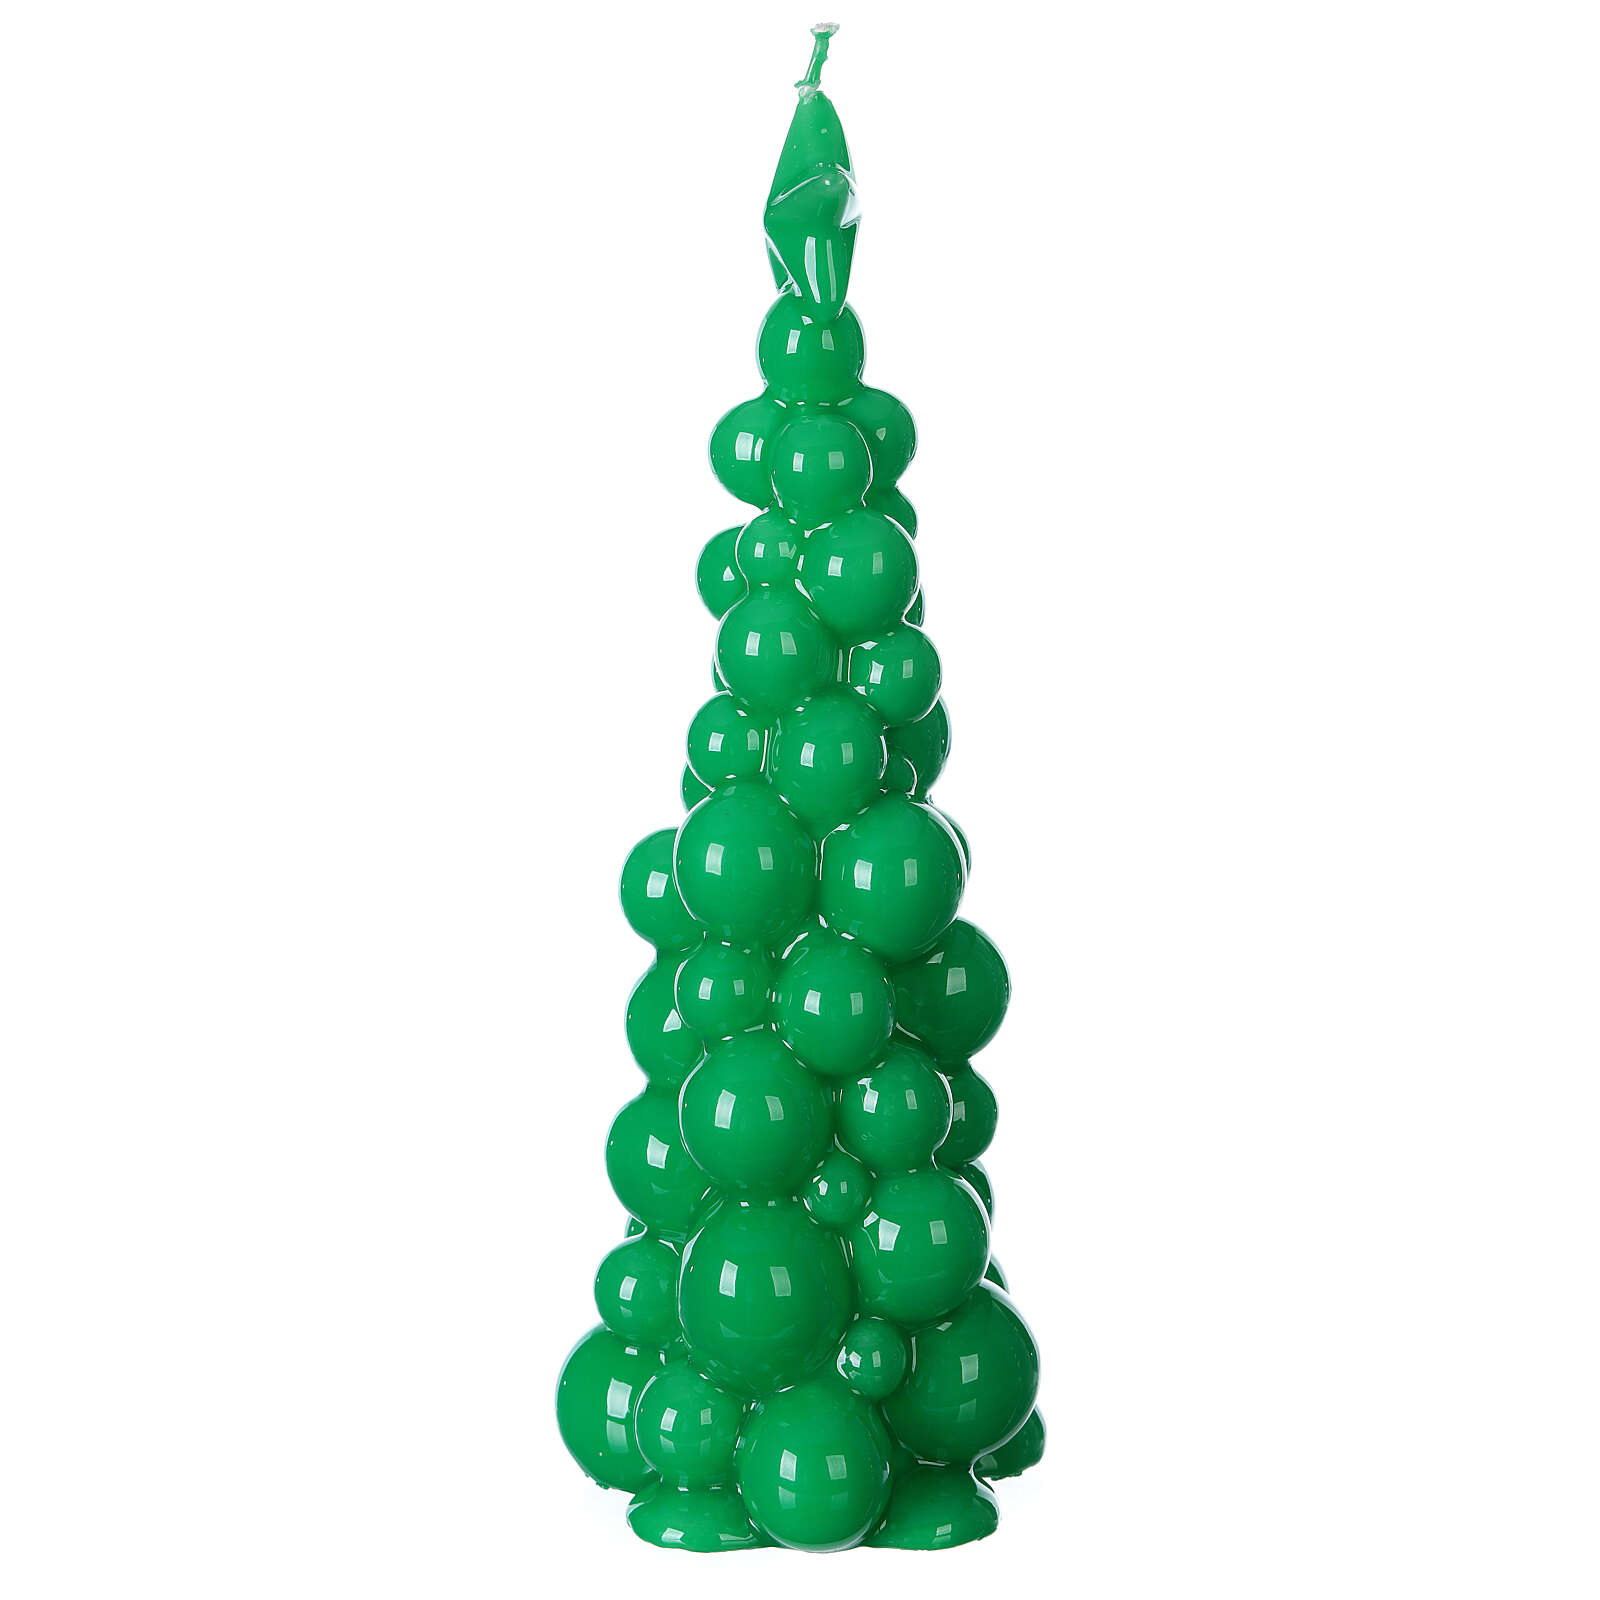 Mosca green Christmas candle 21 cm 3